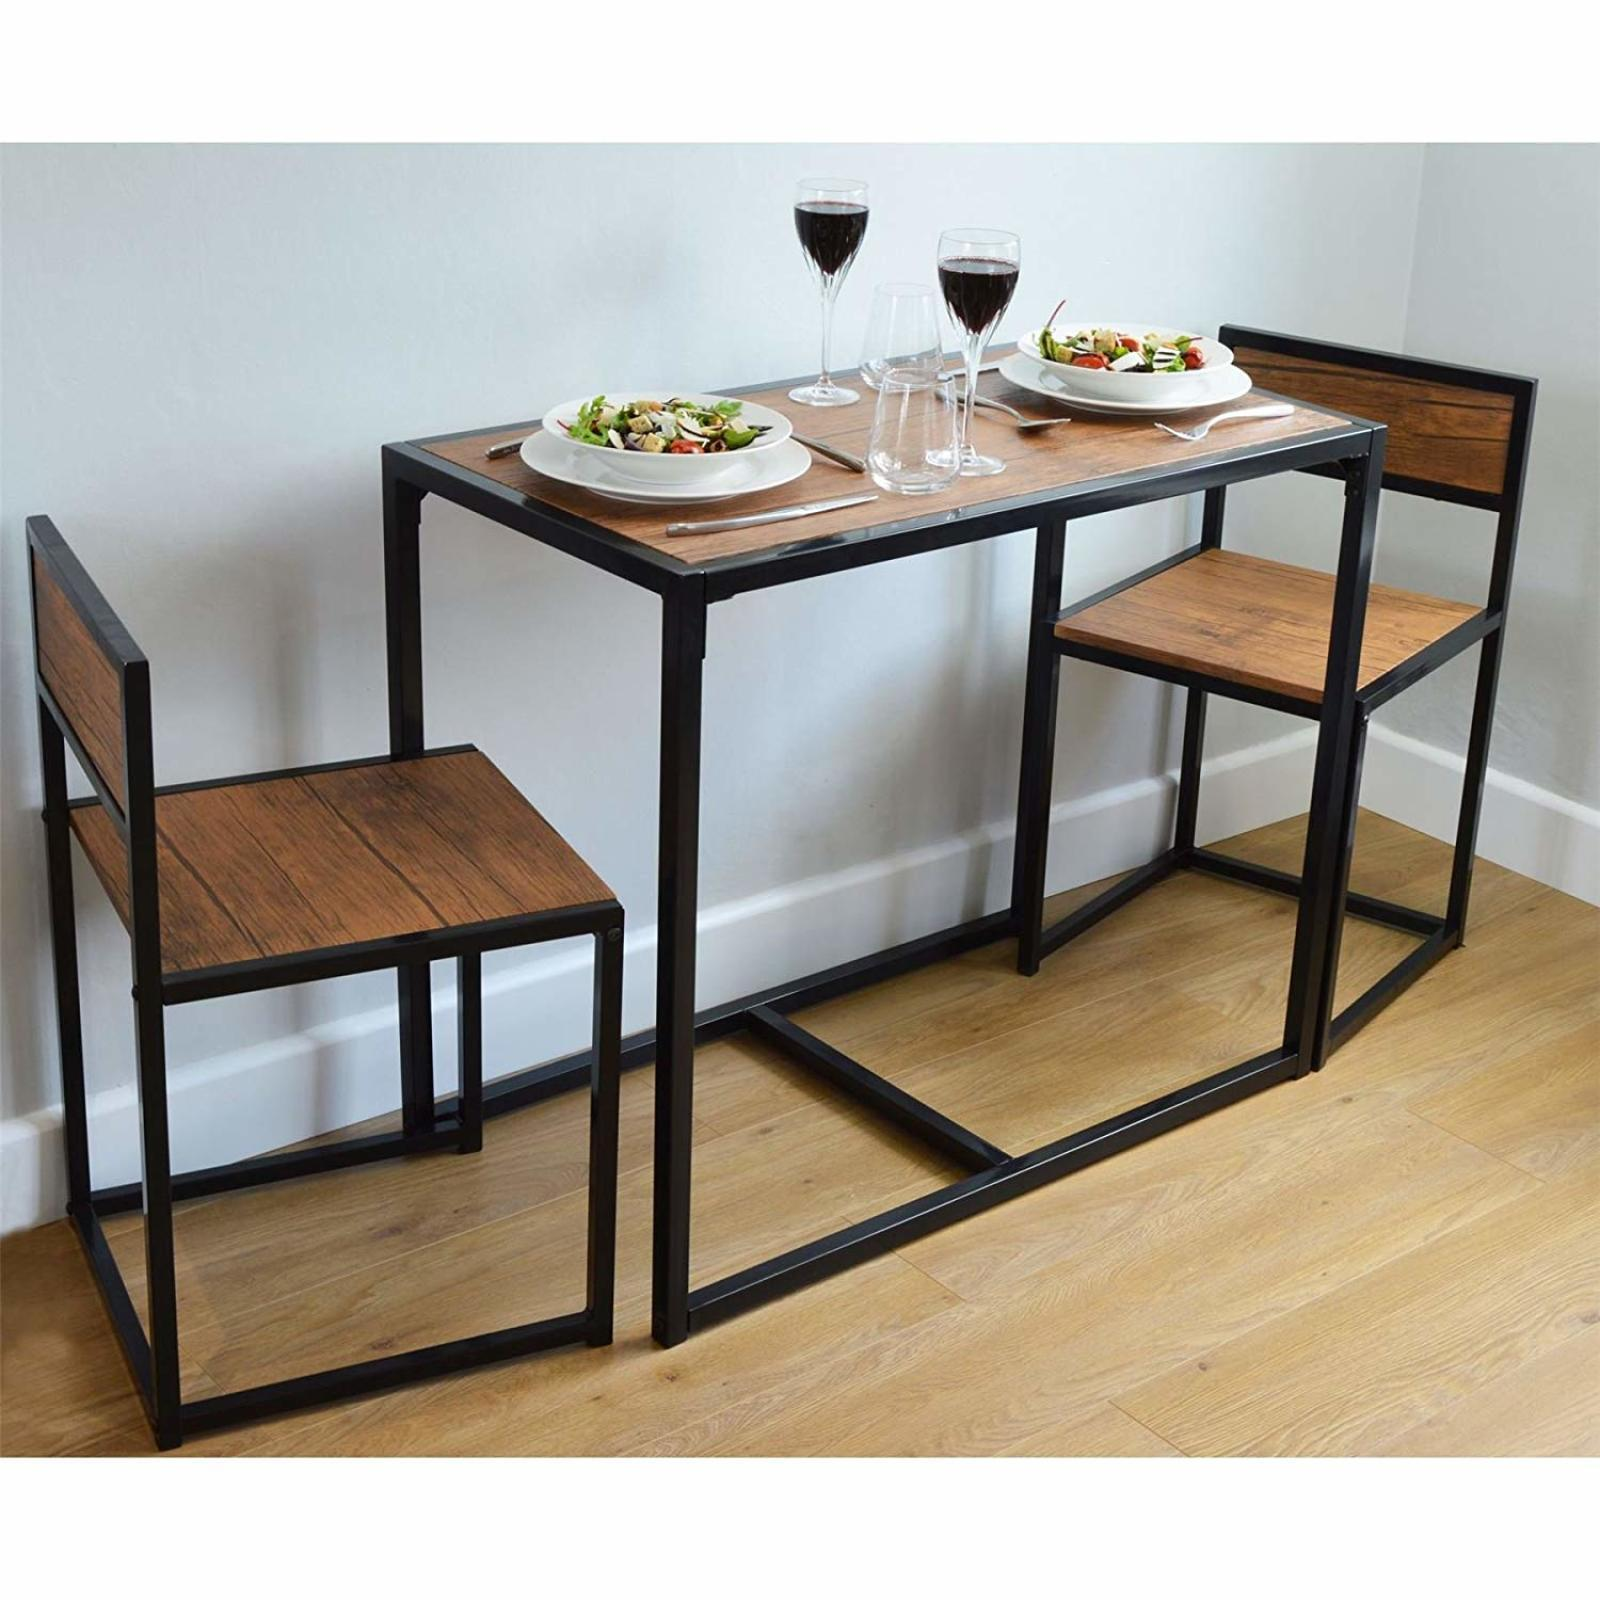 Dining Table And 2 Chairs Set 2 Person Space Saving Compact Home Furniture New Ebay